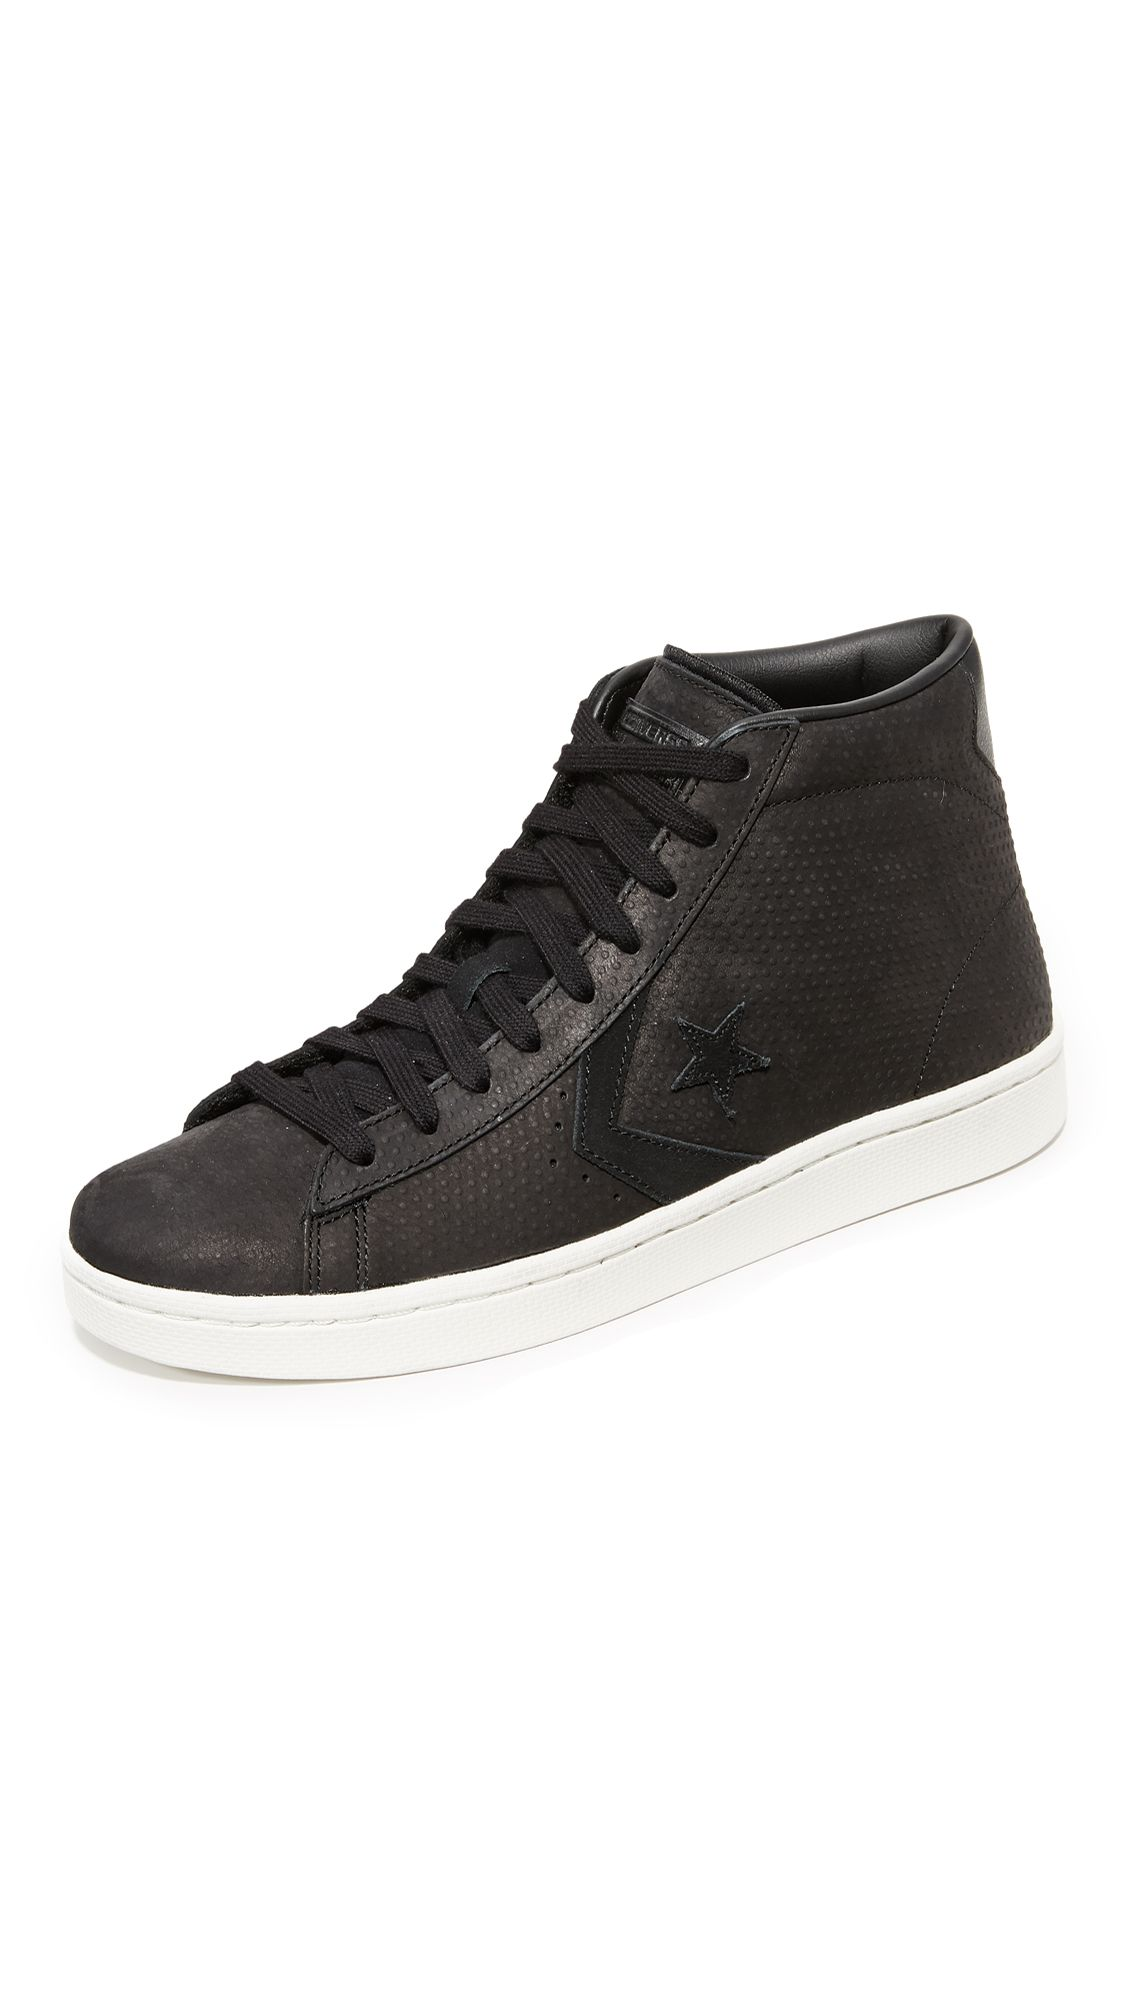 77726c31b064 CONVERSE Pro Leather Pl 76 Mid Top Sneakers.  converse  shoes  sneakers